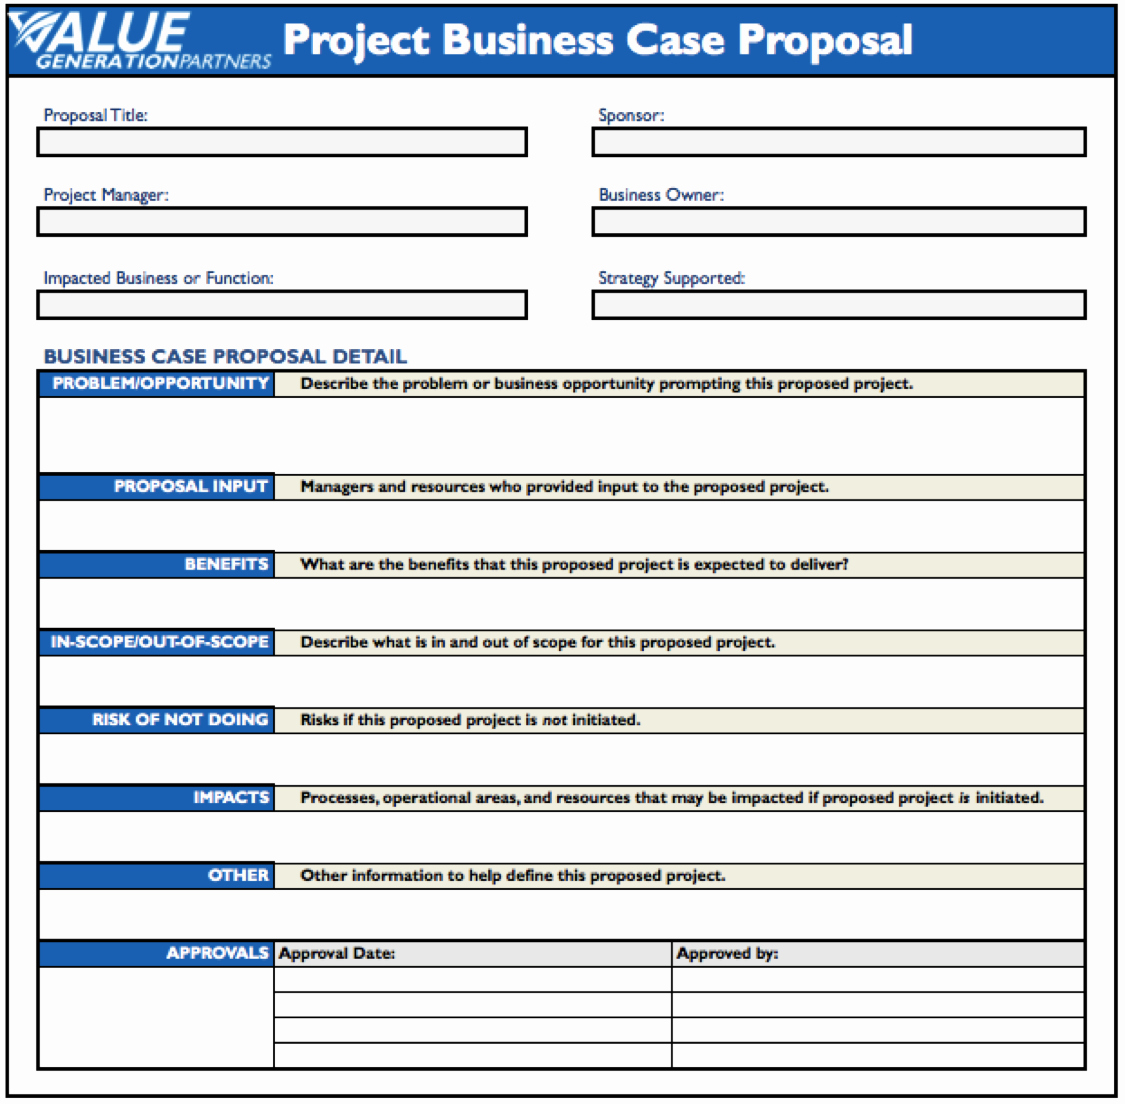 Simple Business Case Template Beautiful Generating Value by Using A Project Business Case Proposal